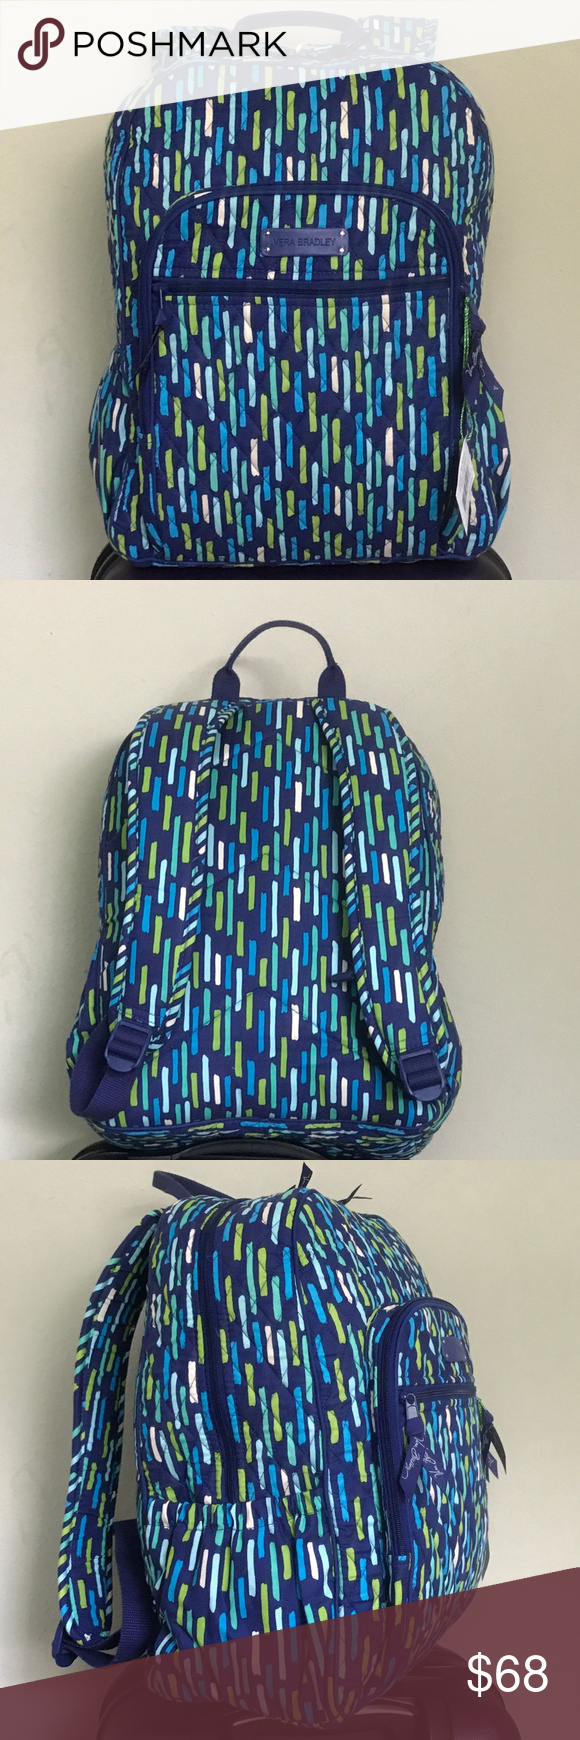 d68ba7c0ec Vera Bradley Campus Backpack in Katalina Showers Features a front zip  pocket with wide trim detail